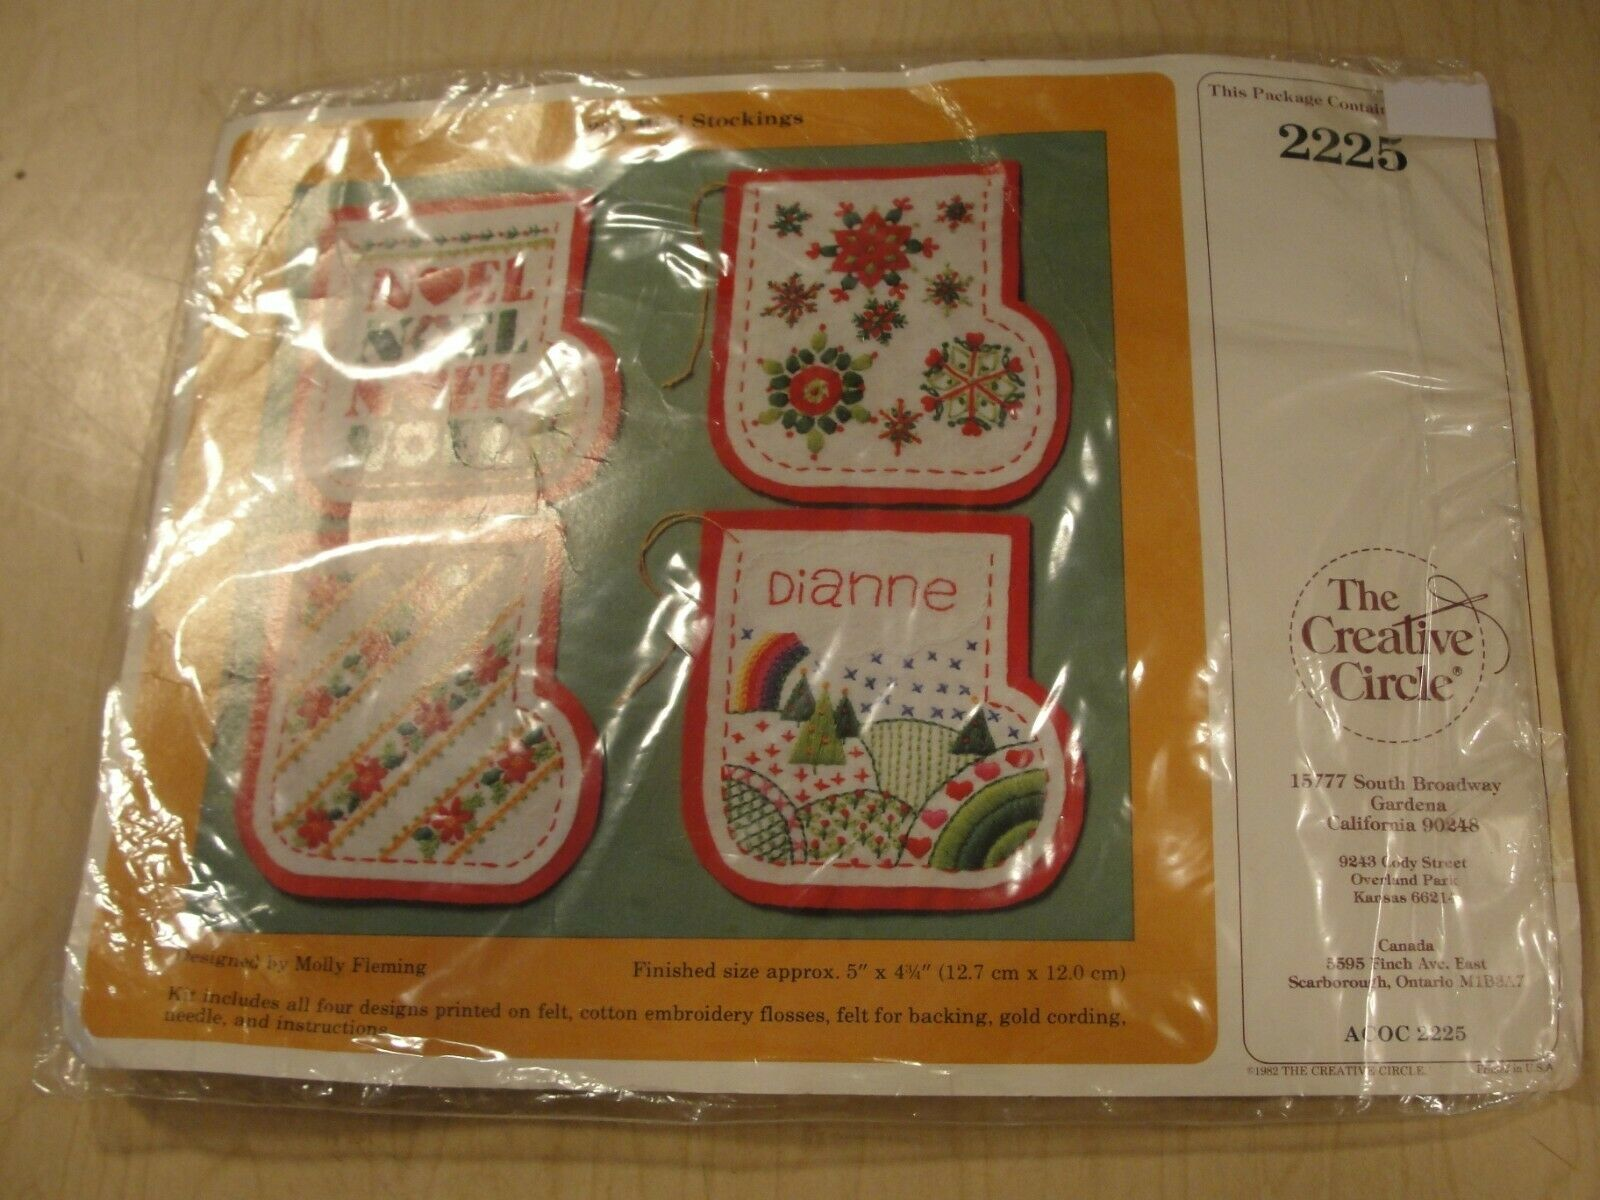 The Creative Circle Christmas Felt Mini Stockings Kit Molly Fleming Vintage 2225 - $4.59